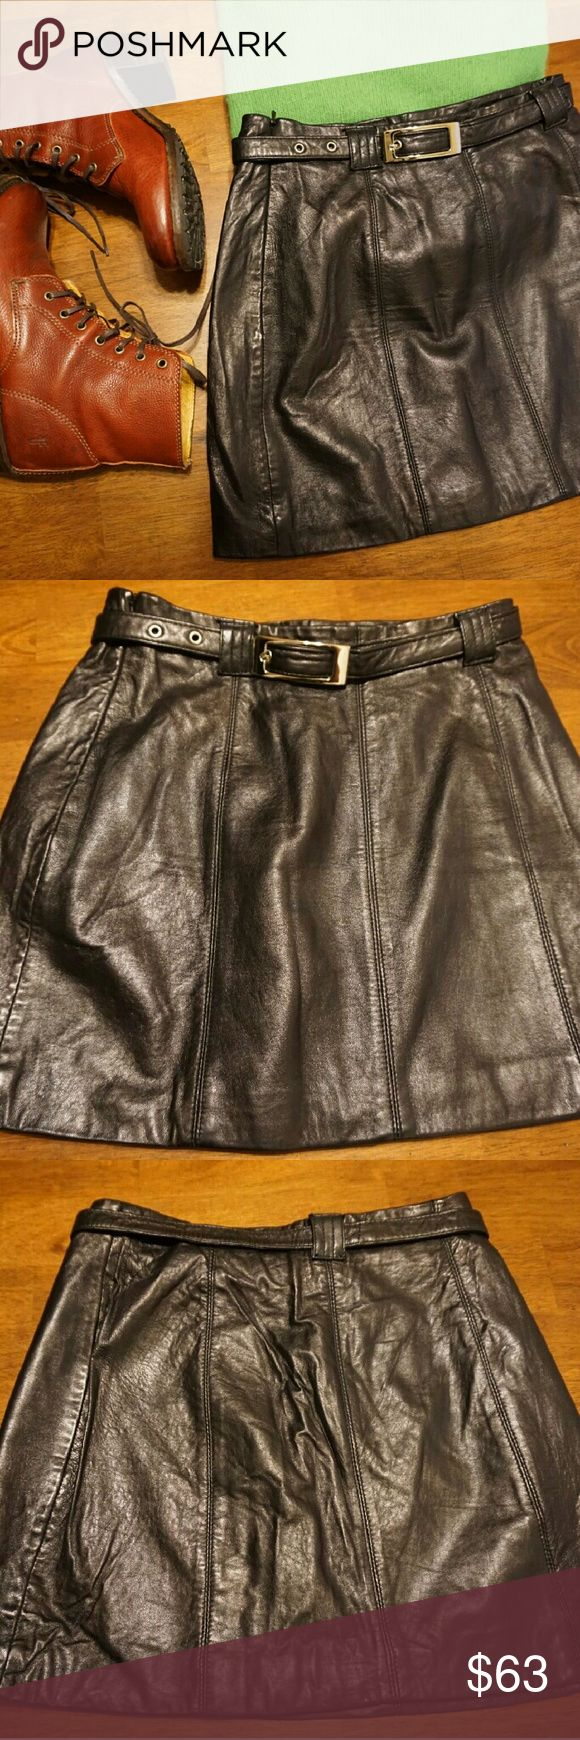 1000 ideas about leather mini skirts on